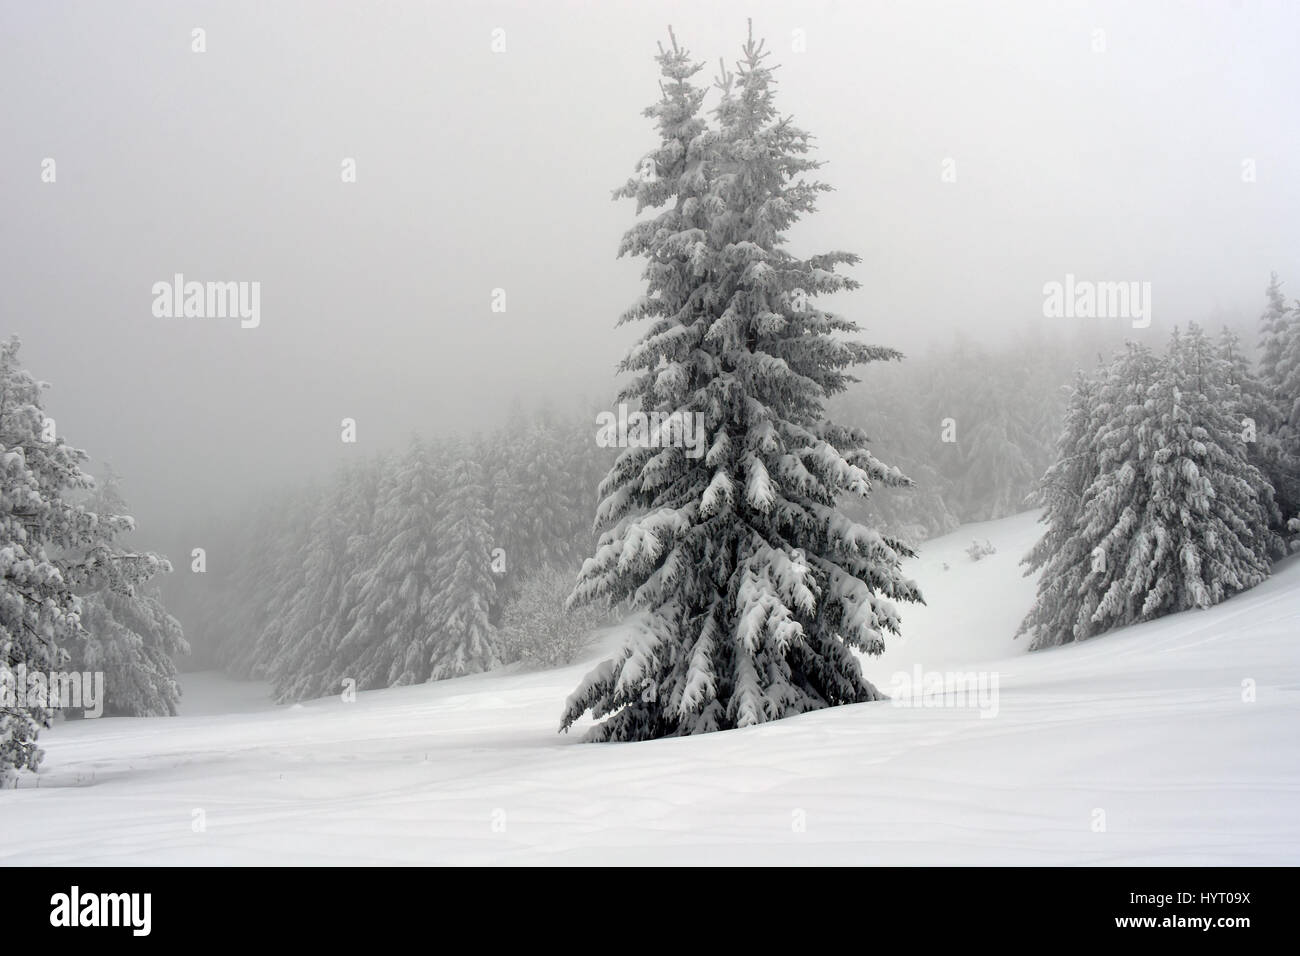 Cold winter day in the mountain. Fir trees covered with thick snow. The forest on the background hidden in fog. - Stock Image